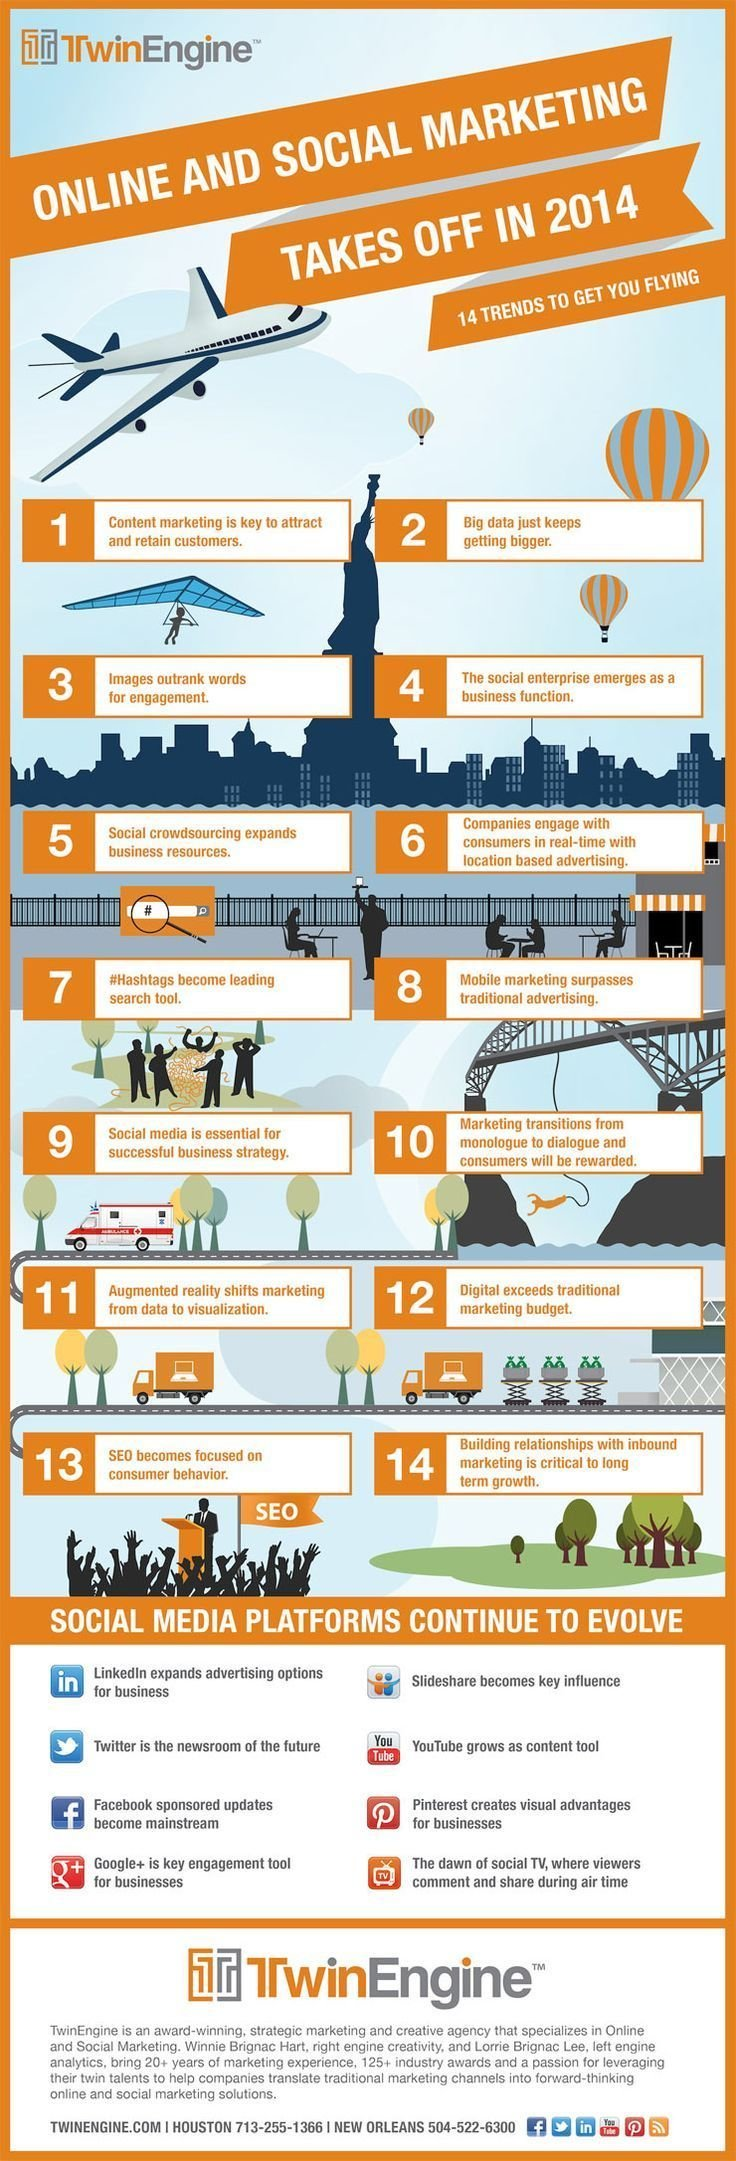 Online and Social Marketing Takes off in 2014: 14 Trends to get you Flying #infographic